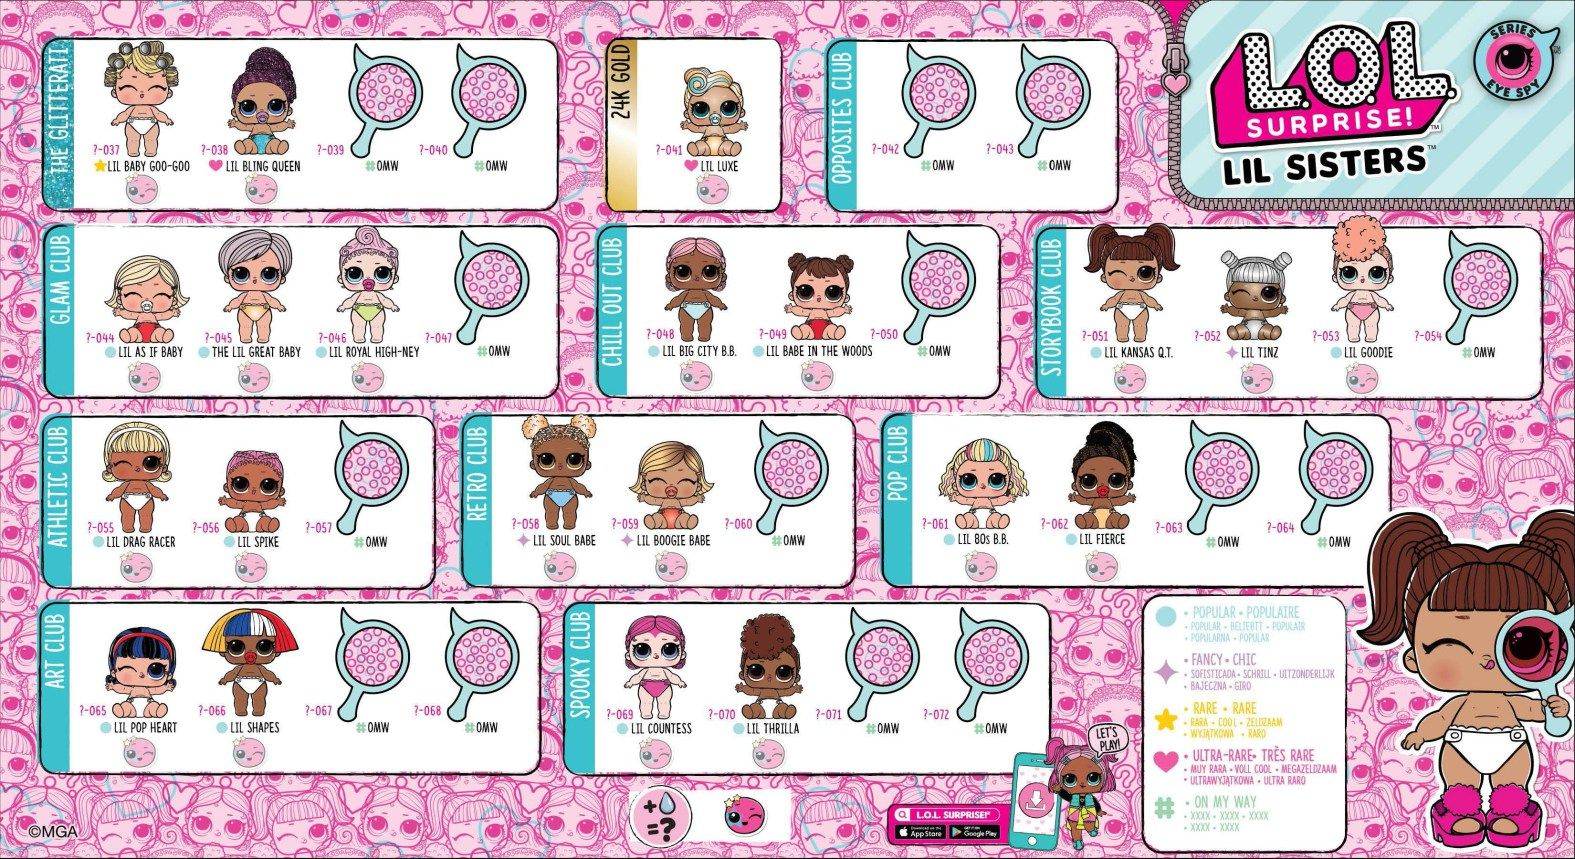 Lol Surprise Series 4 Eye Spy Lil Sisters Collector Guide List Checklist Kids Time Lil Sister Lol Dolls Sister Dolls